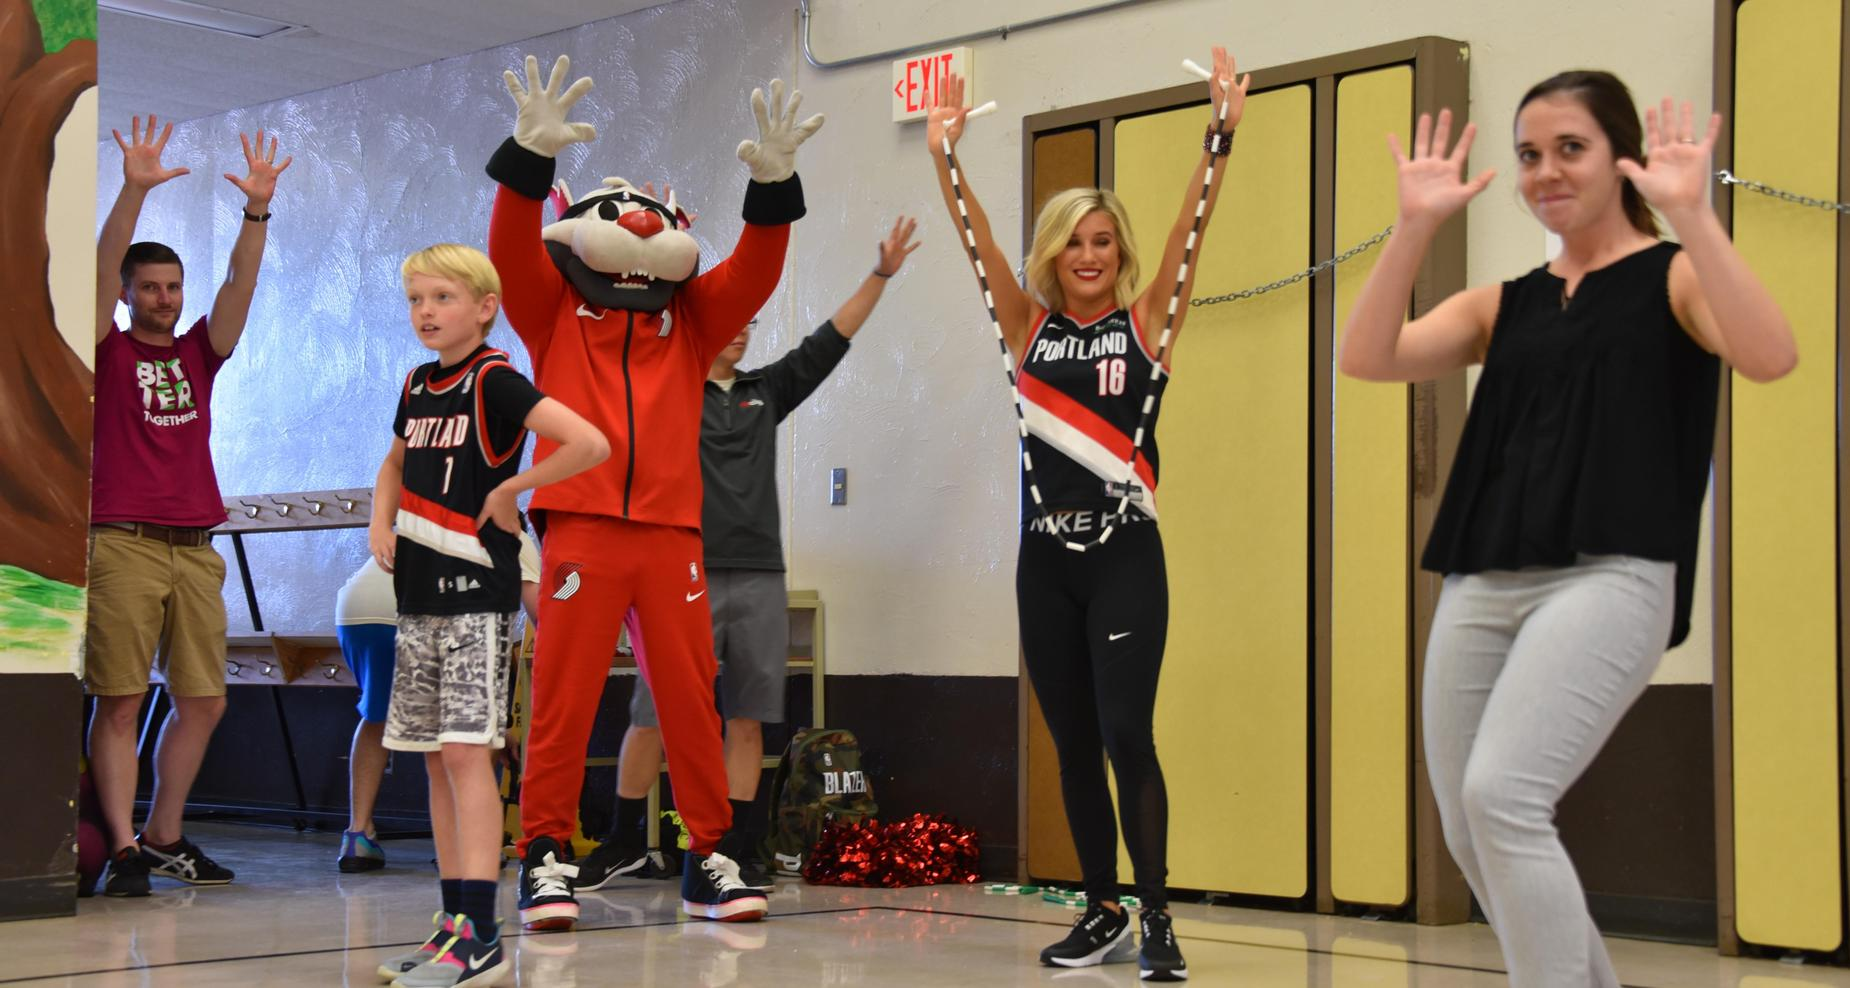 Trail Blazers cheerleaders and mascot at Rocky Heights Elementary.